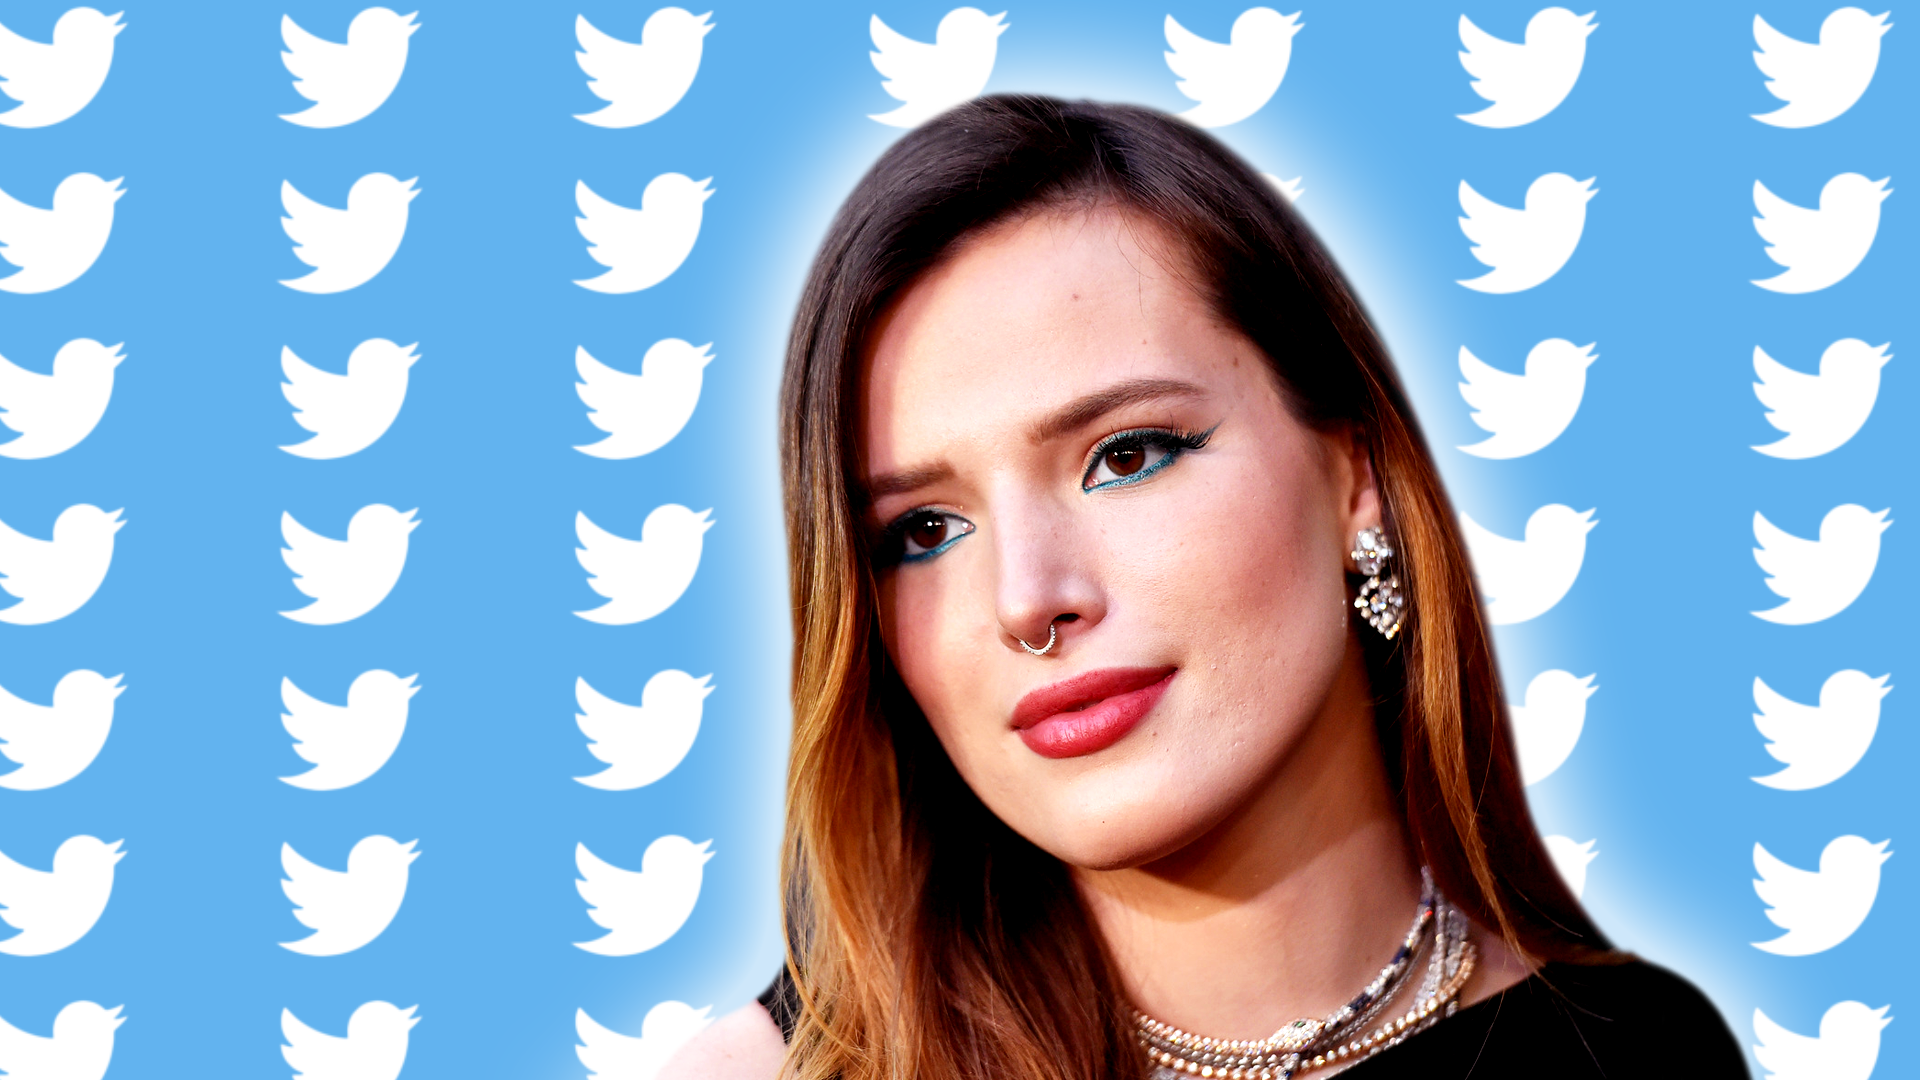 Bella Thorne Posts Her Own Topless Photos After Threats From Hacker